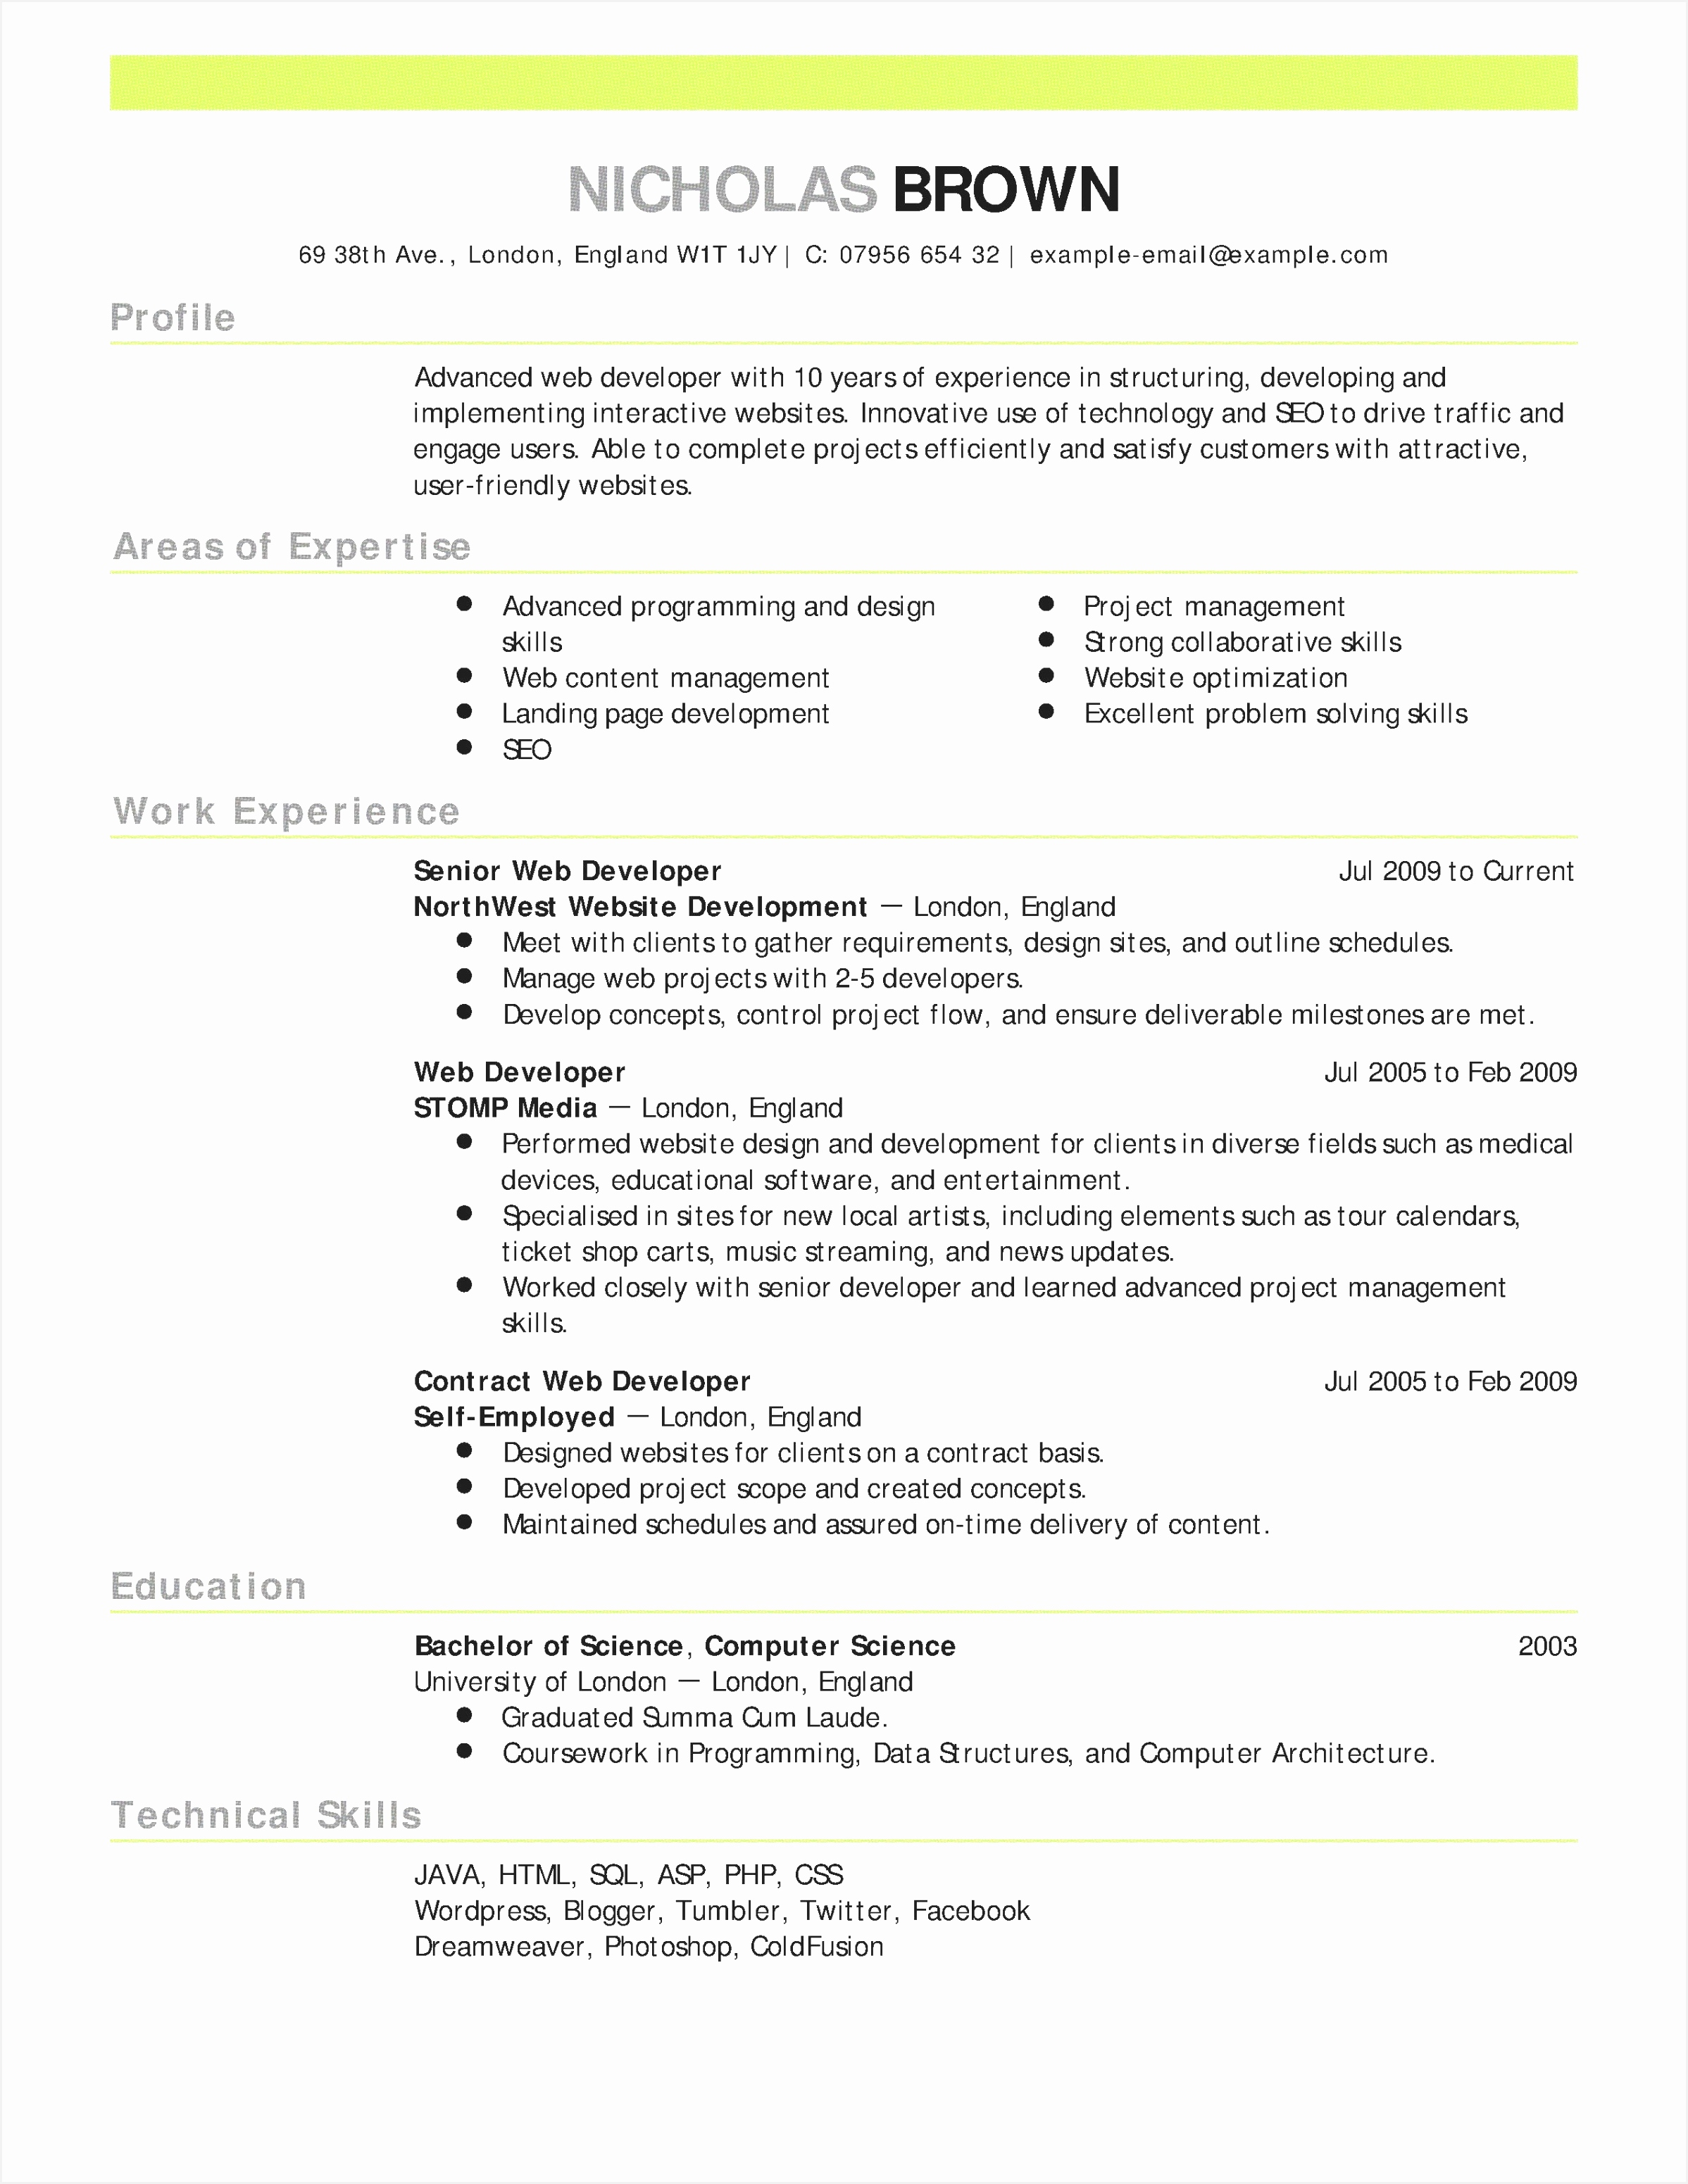 Resume Accountant Sample Gdaqt Inspirational Sample Cover Letter Resume Accounting Clerk New Accounting assistant31022397